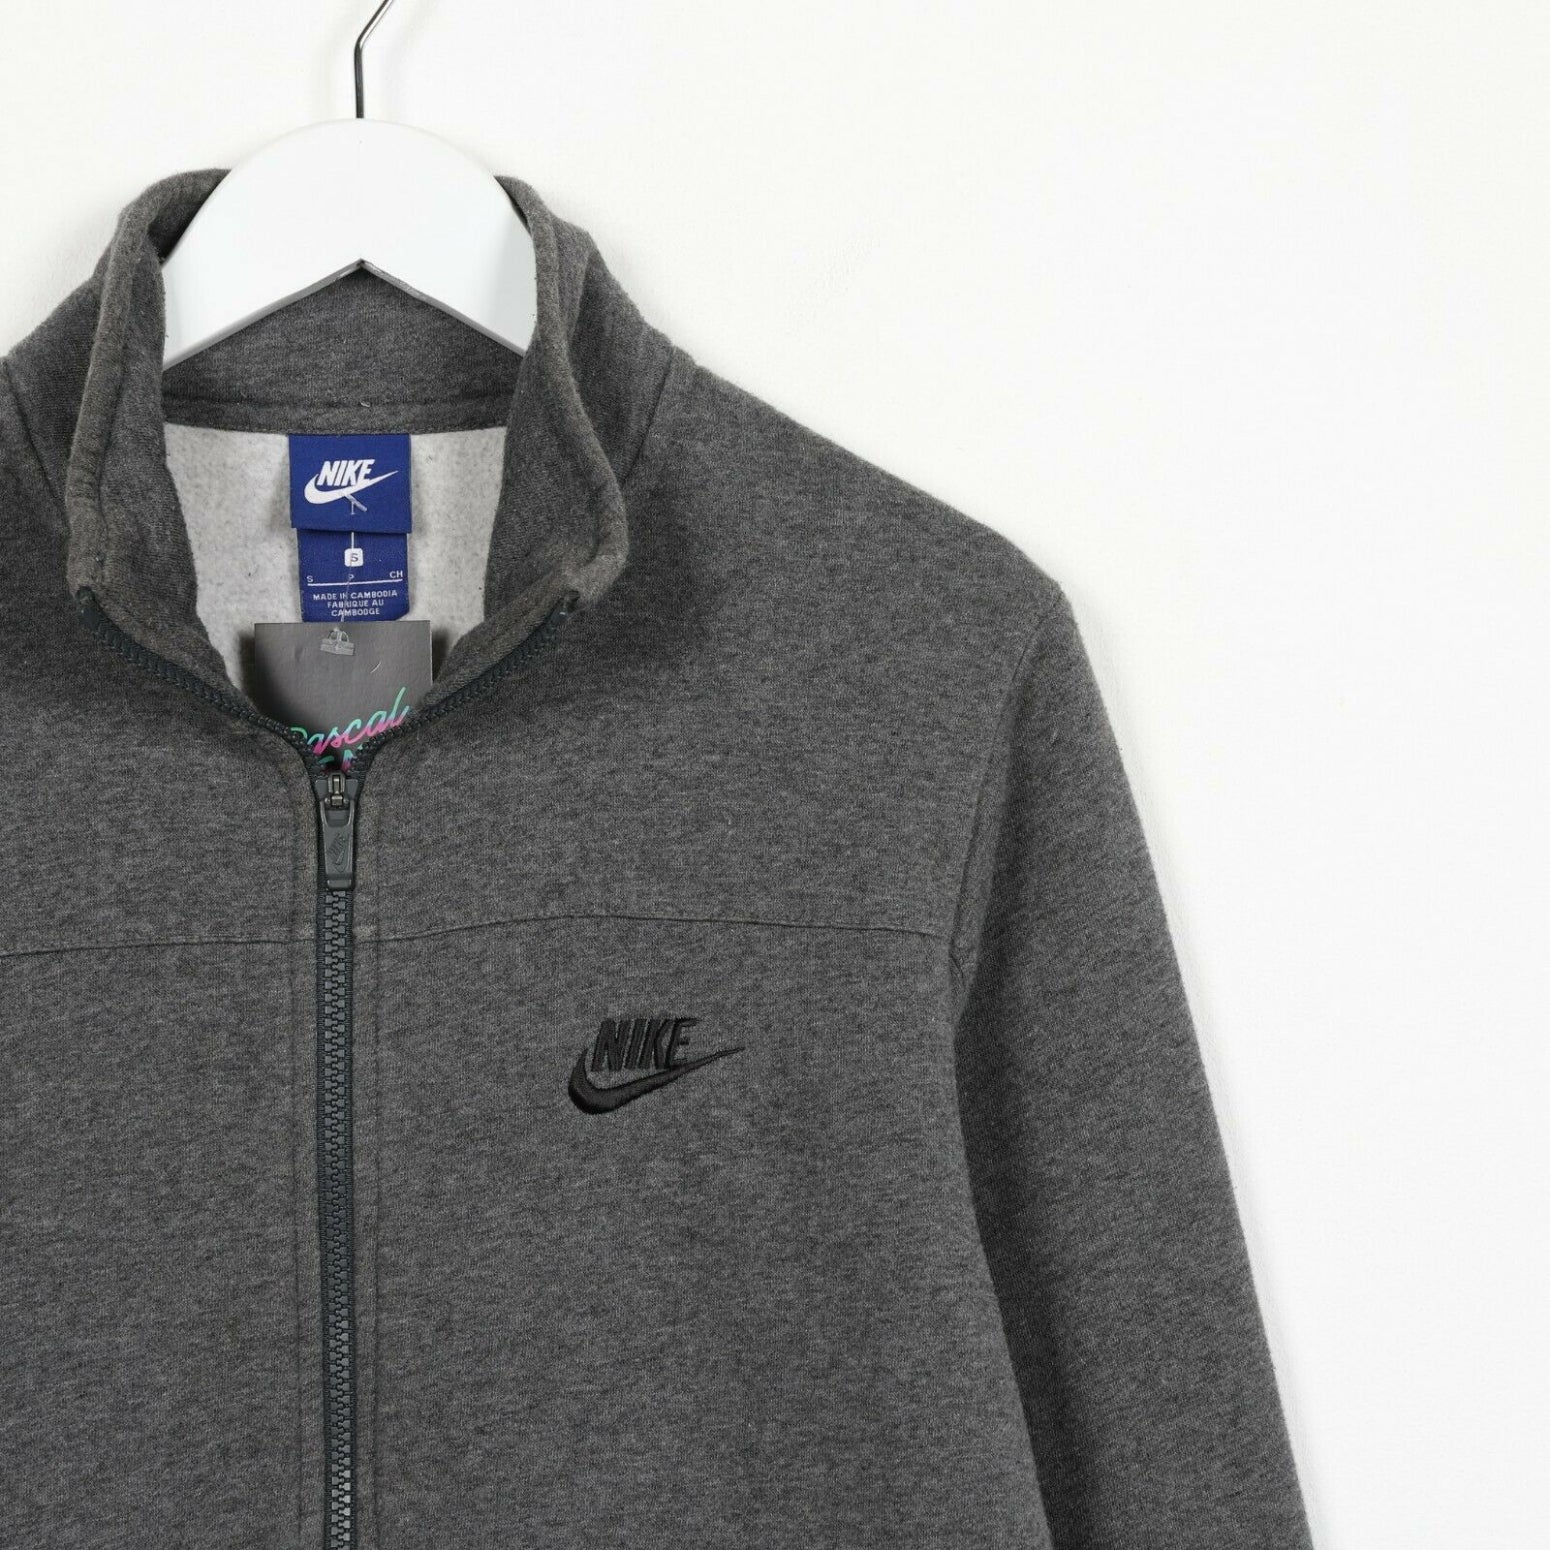 Vintage NIKE Small Logo Zip Up Sweatshirt Jumper Grey small S